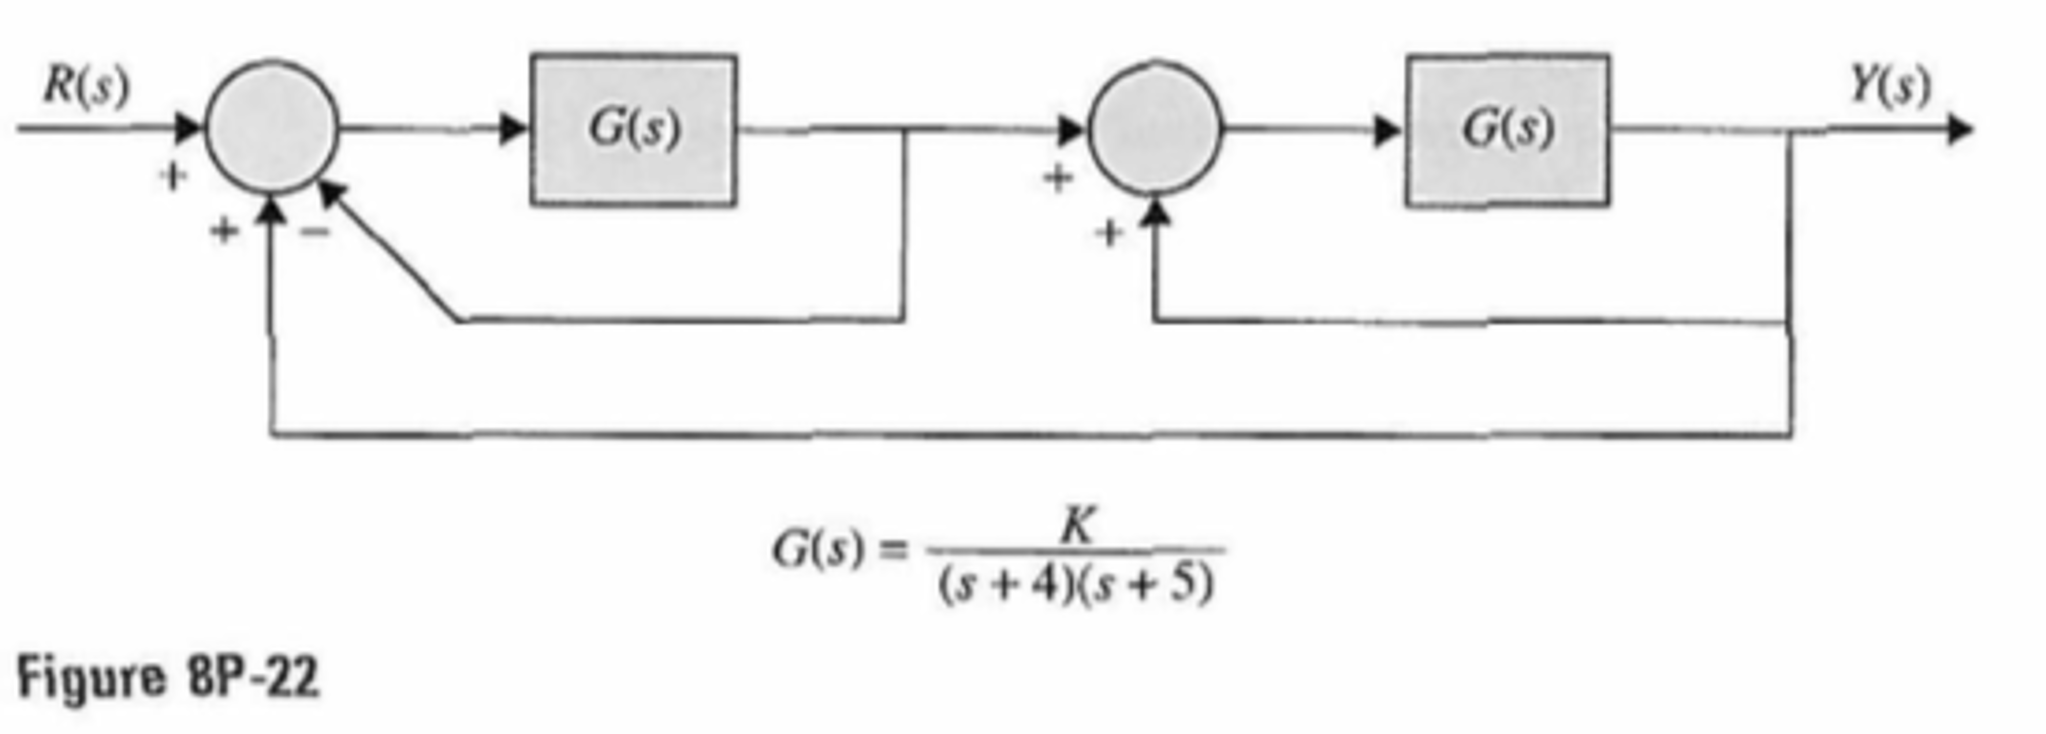 8 22 The Block Diagram Of A Feedback Control Syst Matlab Solve This Problem Using Only Submit Code Thank You